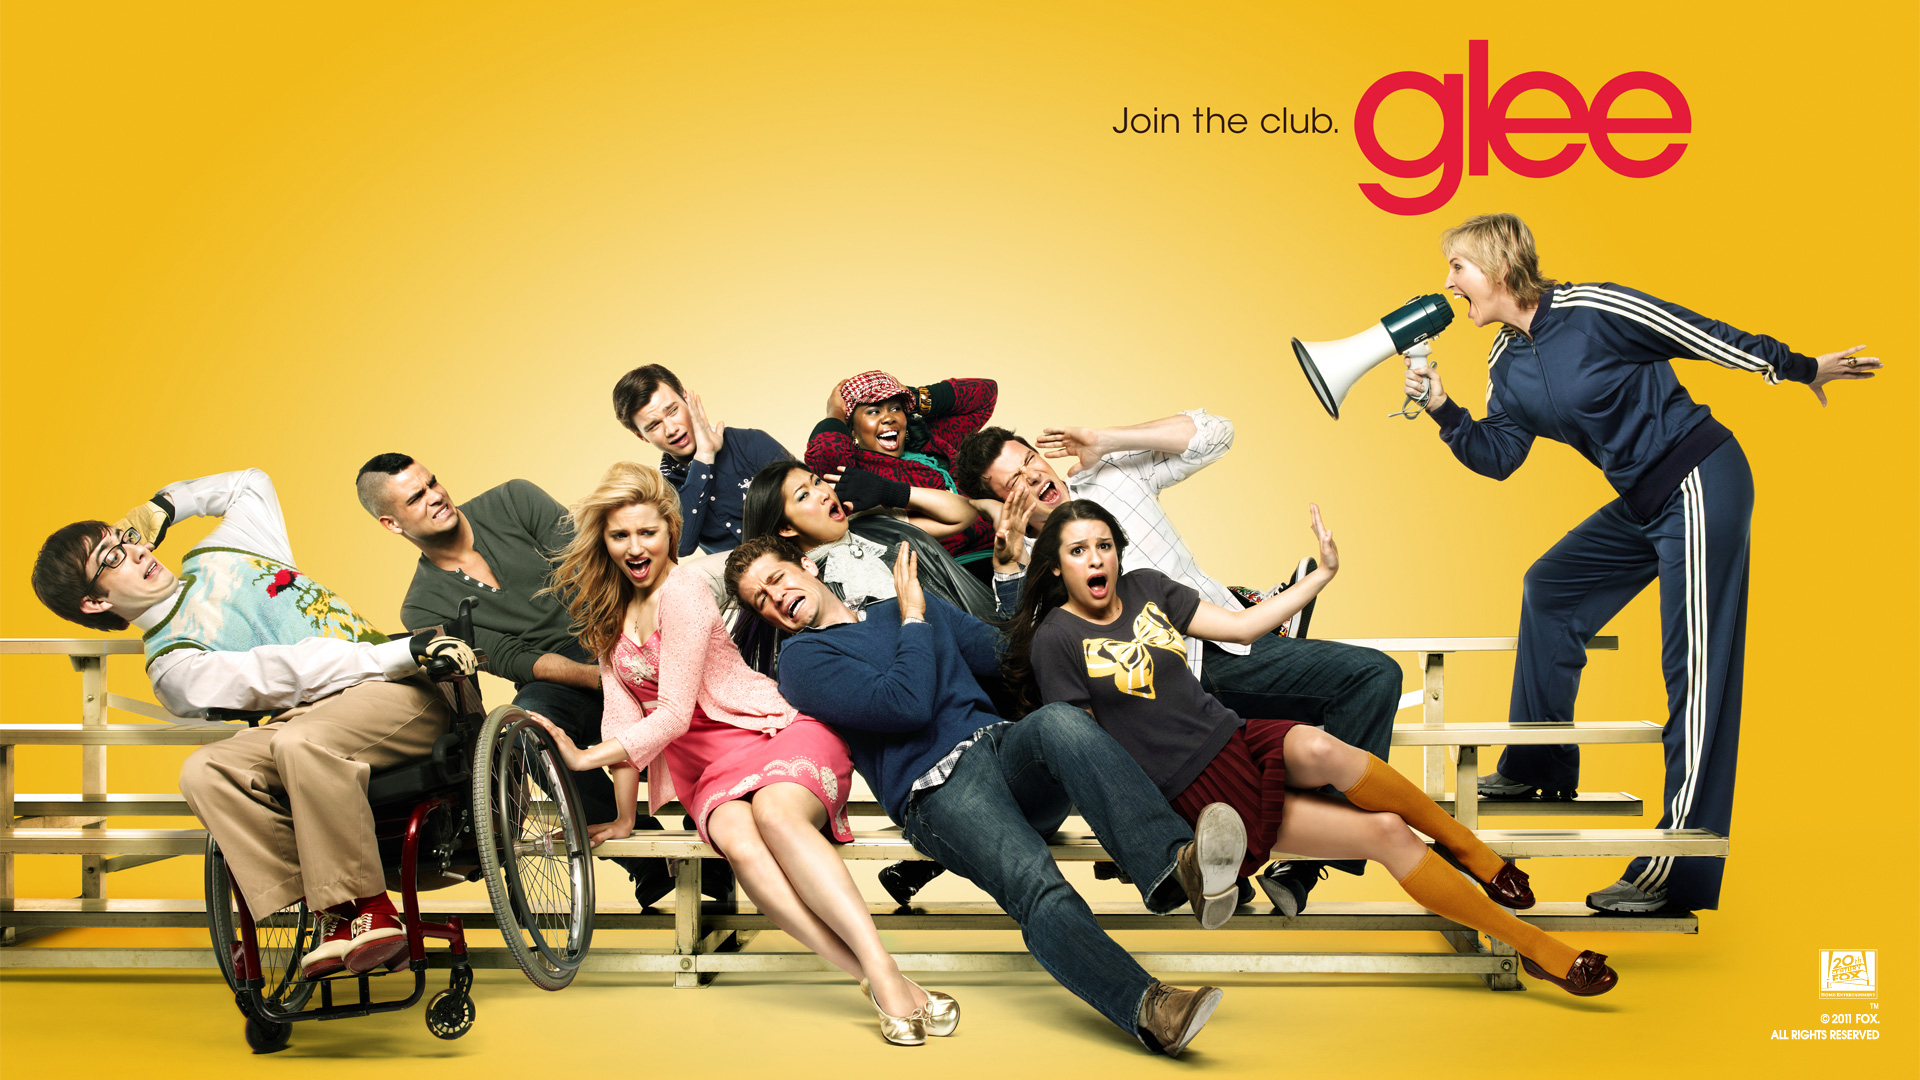 Free Glee Wallpaper